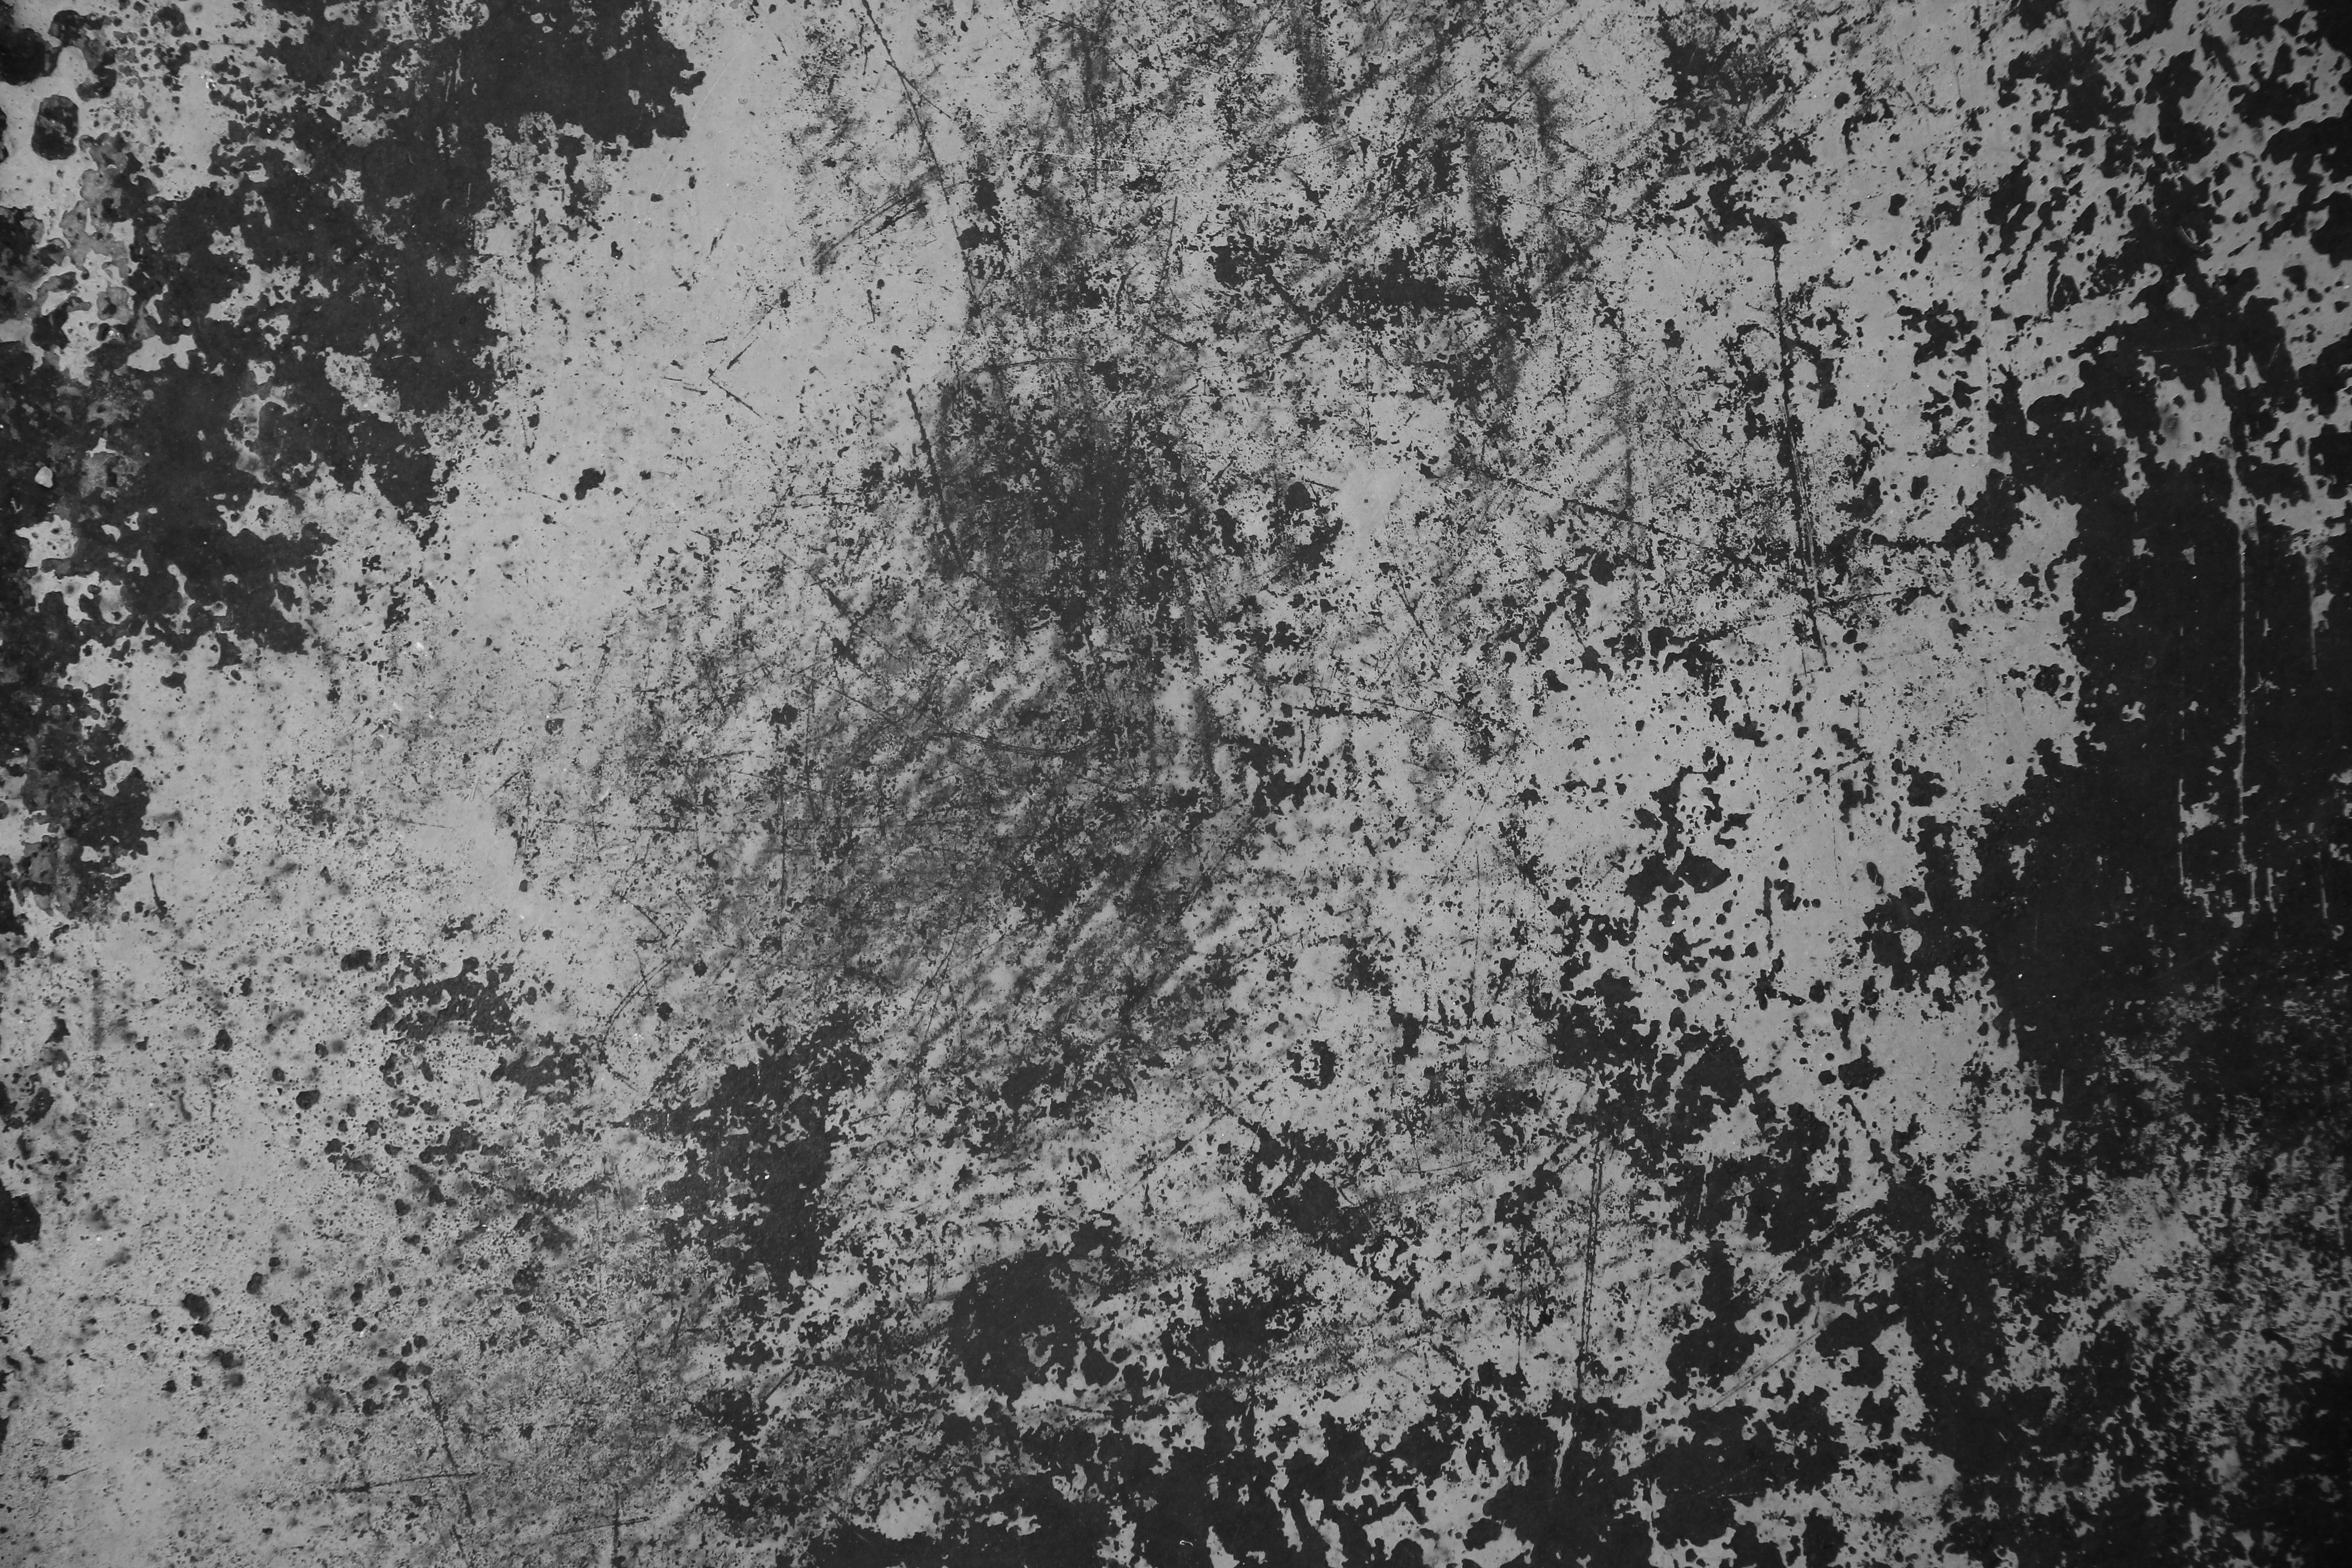 grunge textures archives